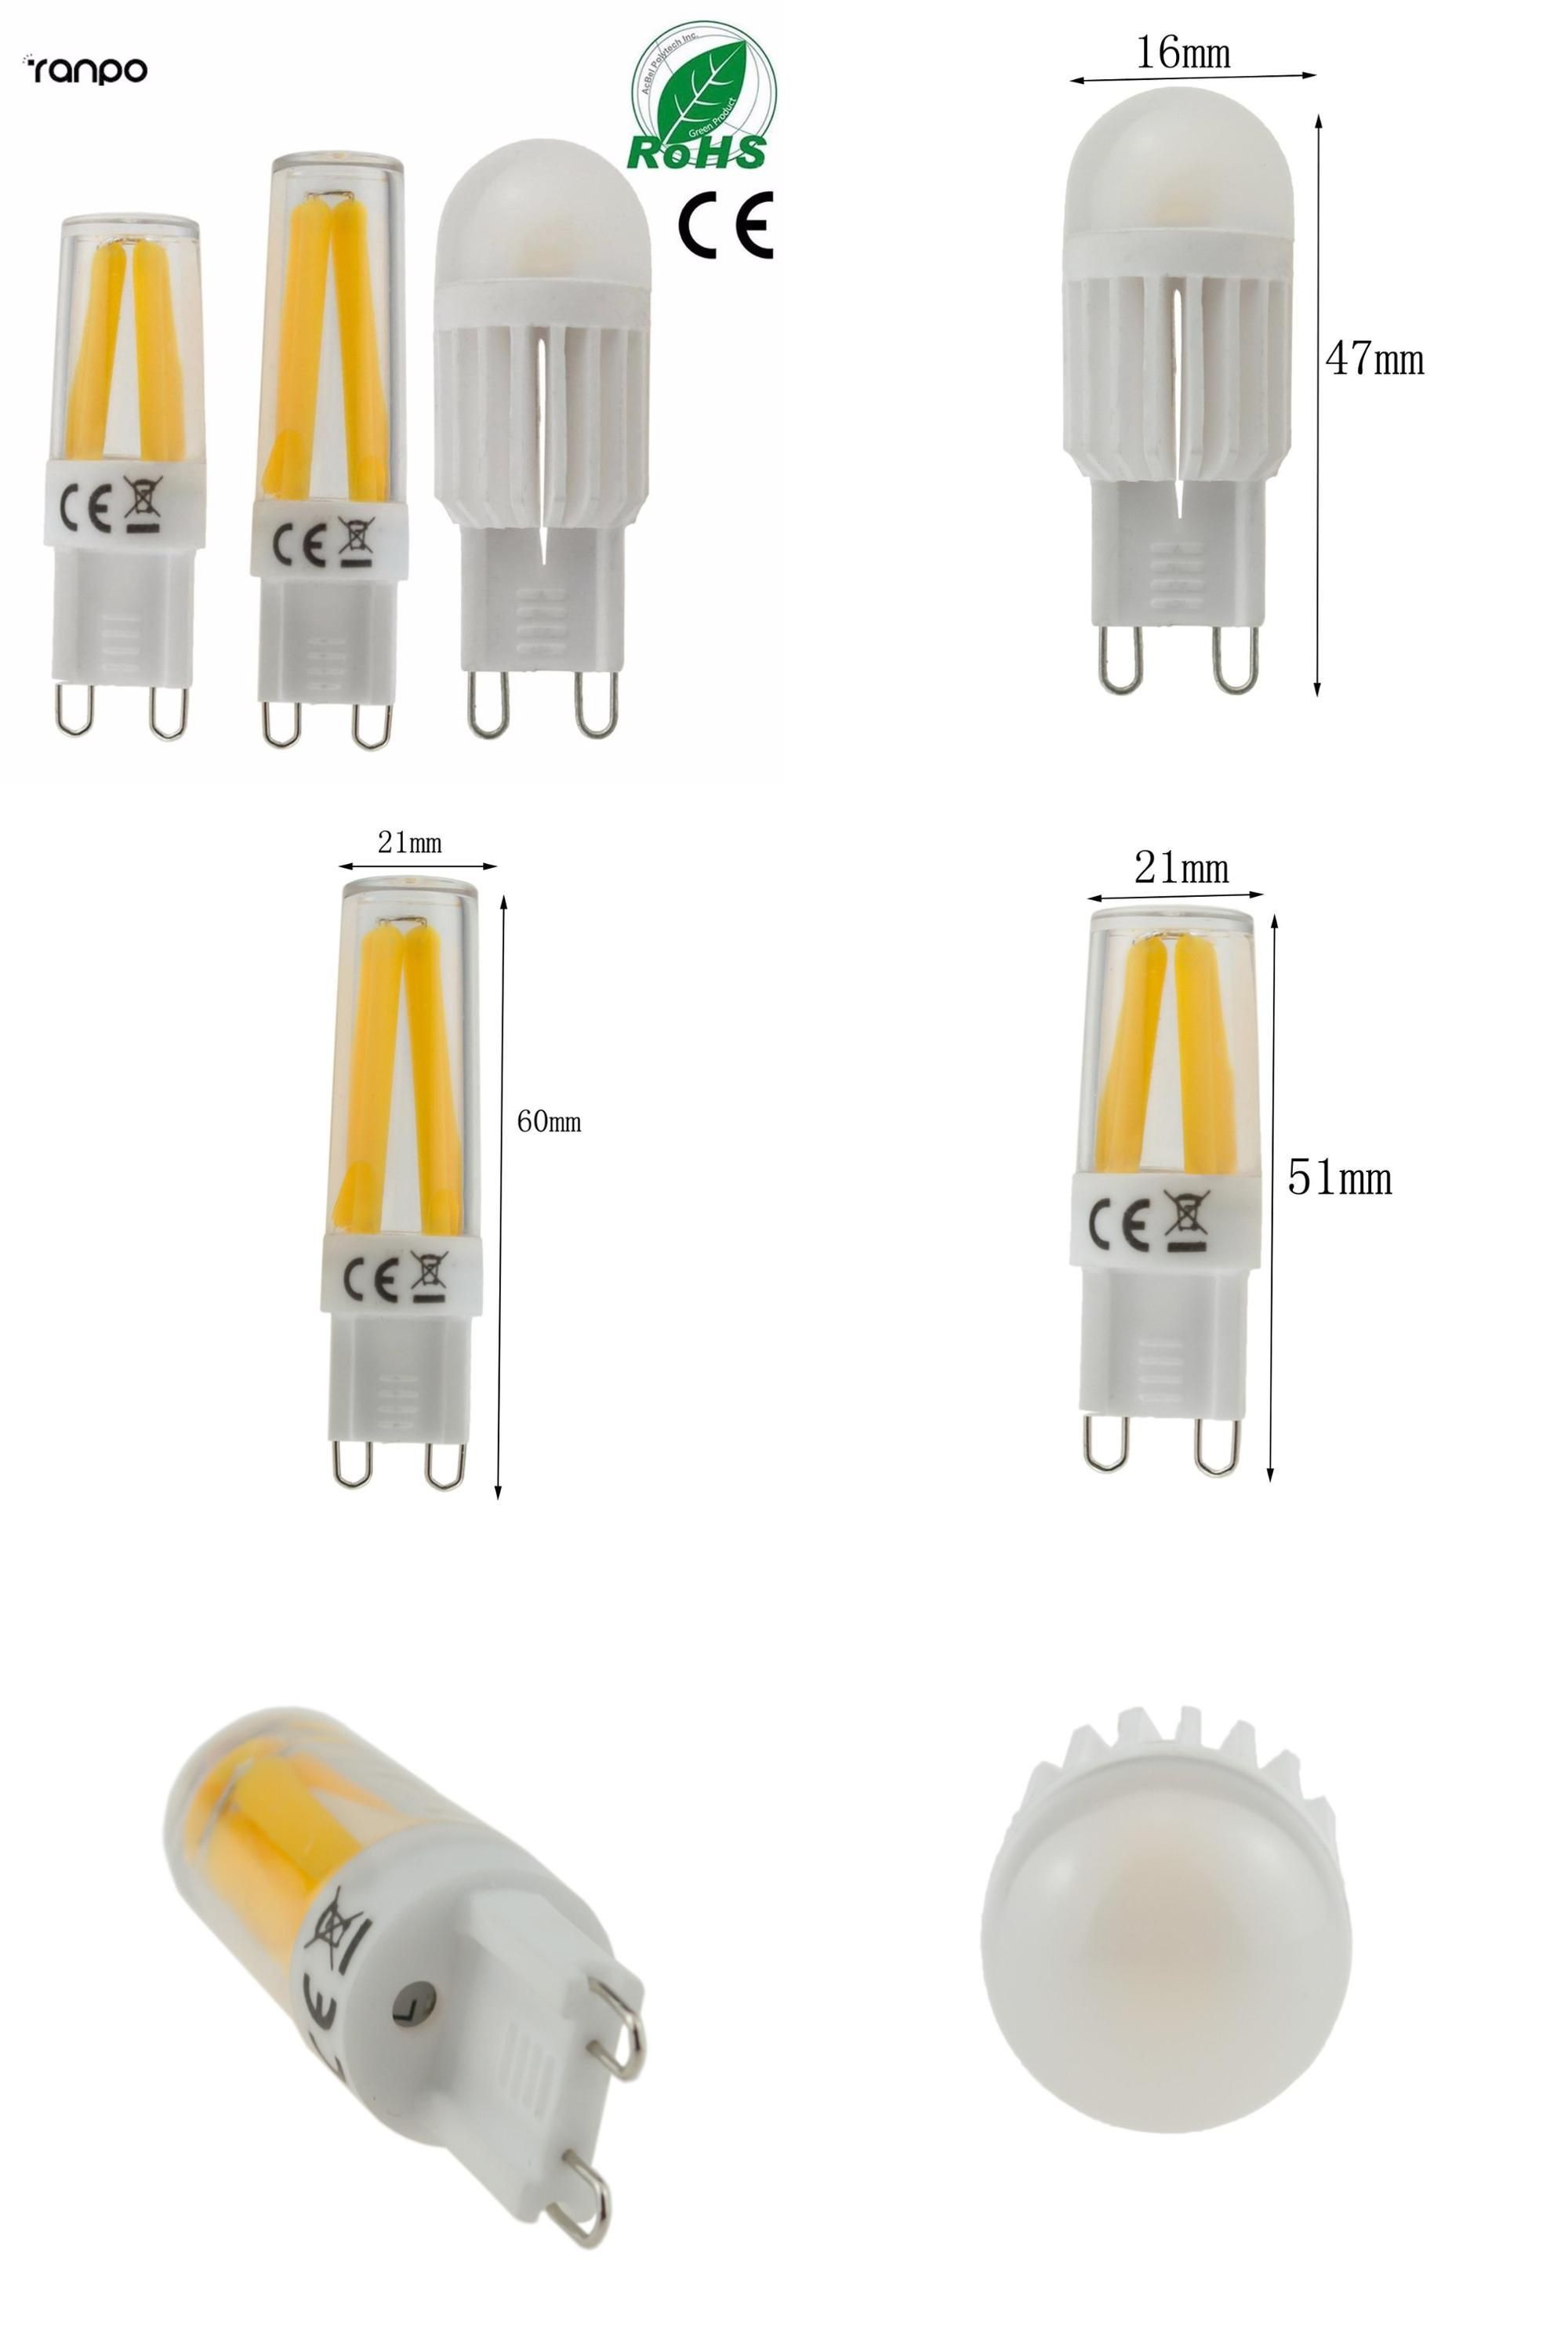 Visit To Buy Dimmable Led G9 4w 6w 9w Lamp Bulb 110v 220v Cob Smd Led Lighting Lights Replace Halogen Spotlight Chandelier Dimmable Led Lamp Bulb Led Lights